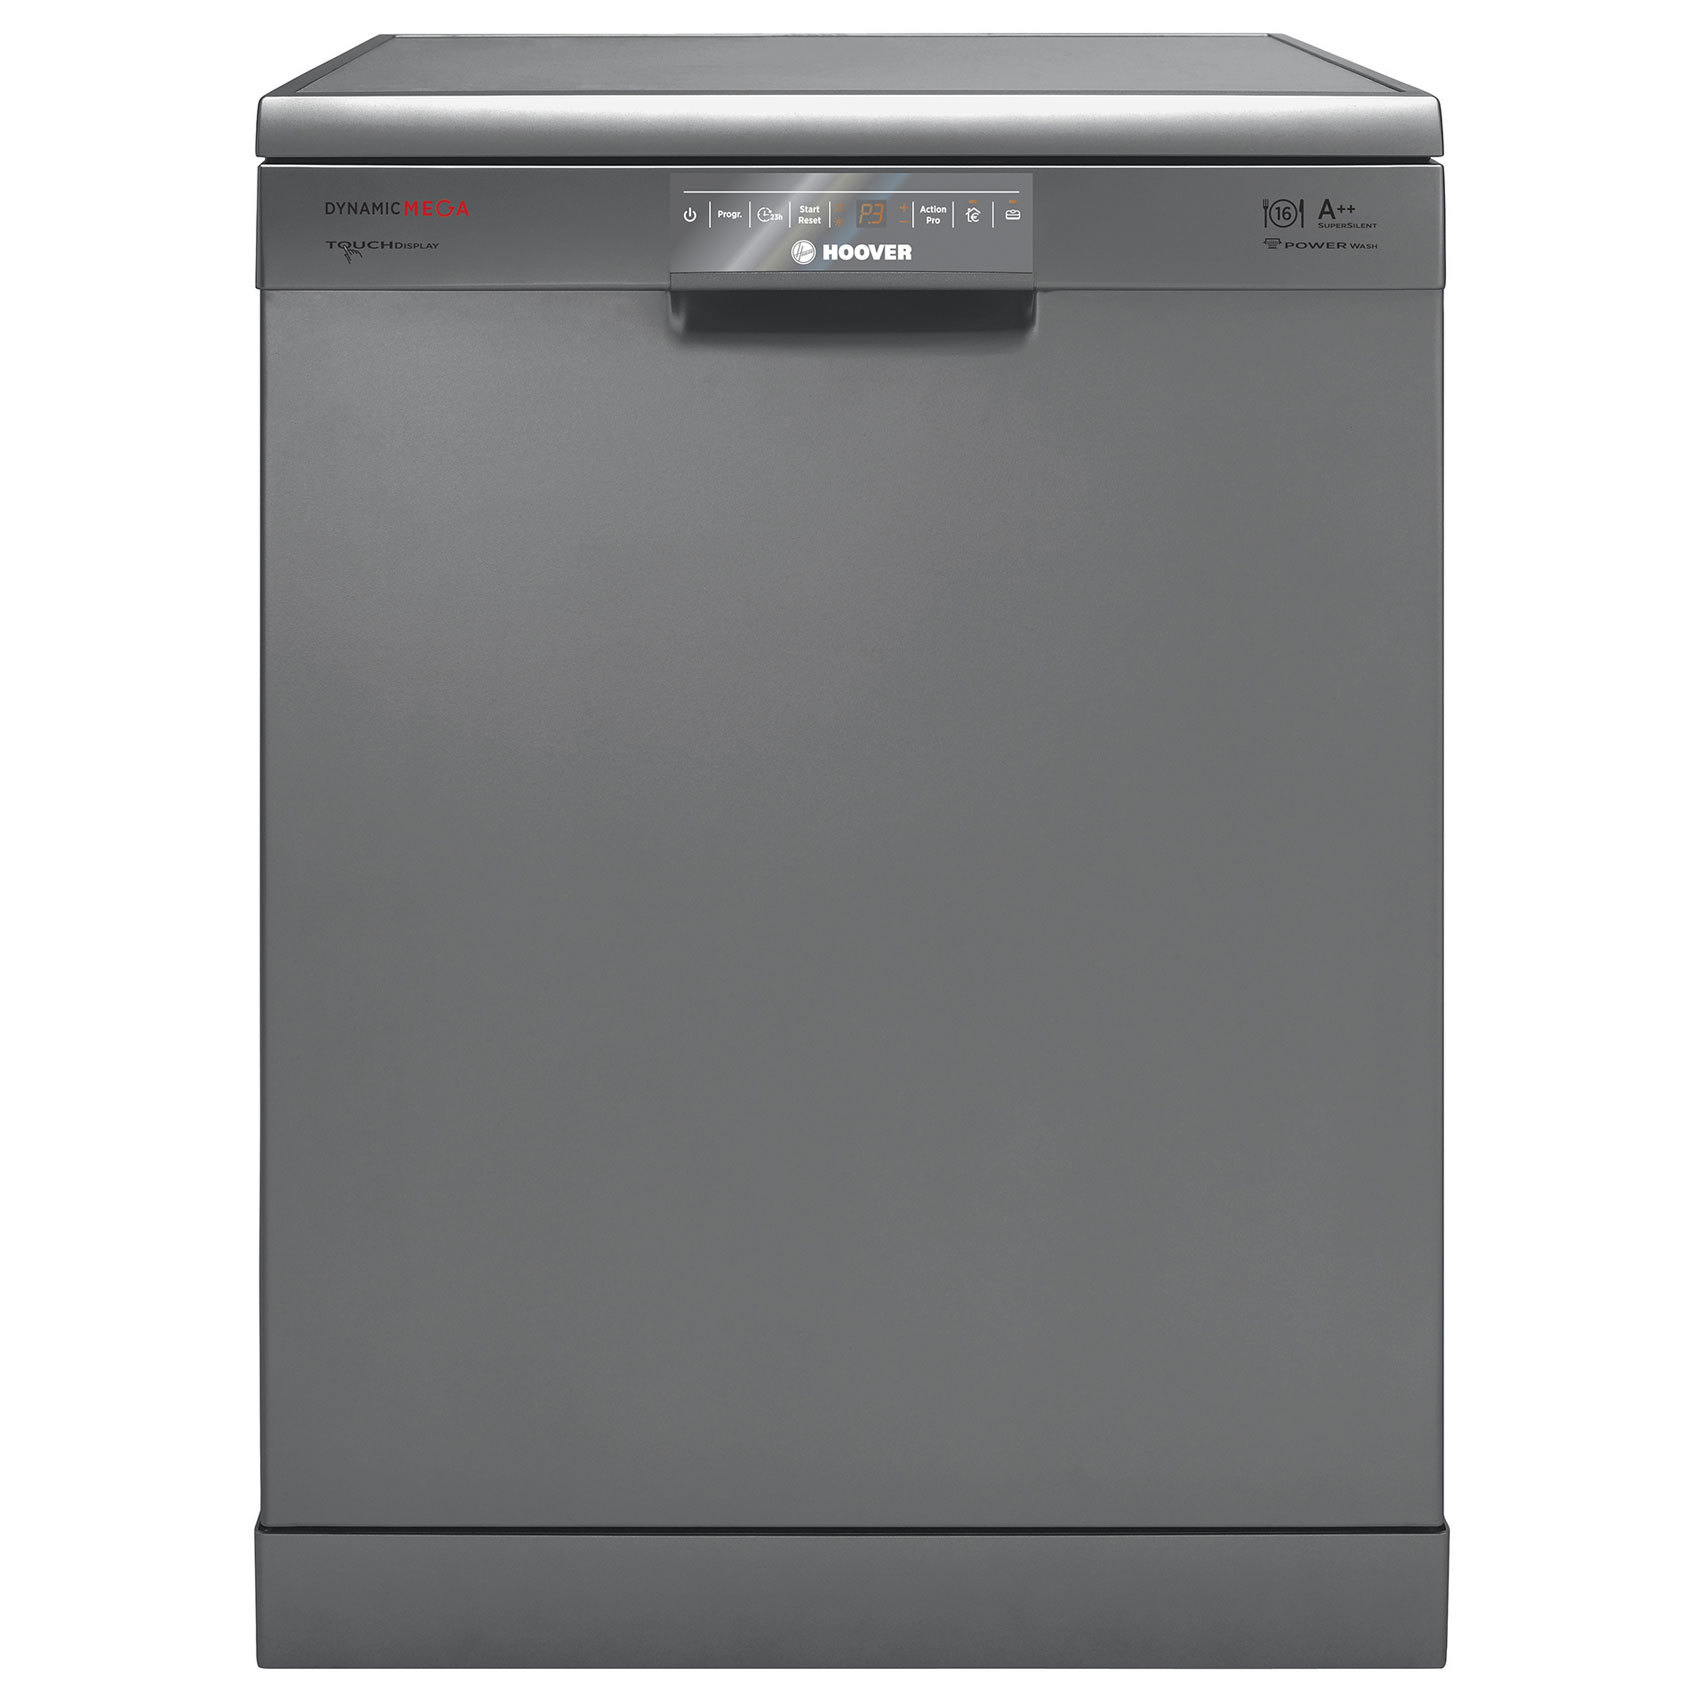 HOOVER DISH WASHER DYM862X/T